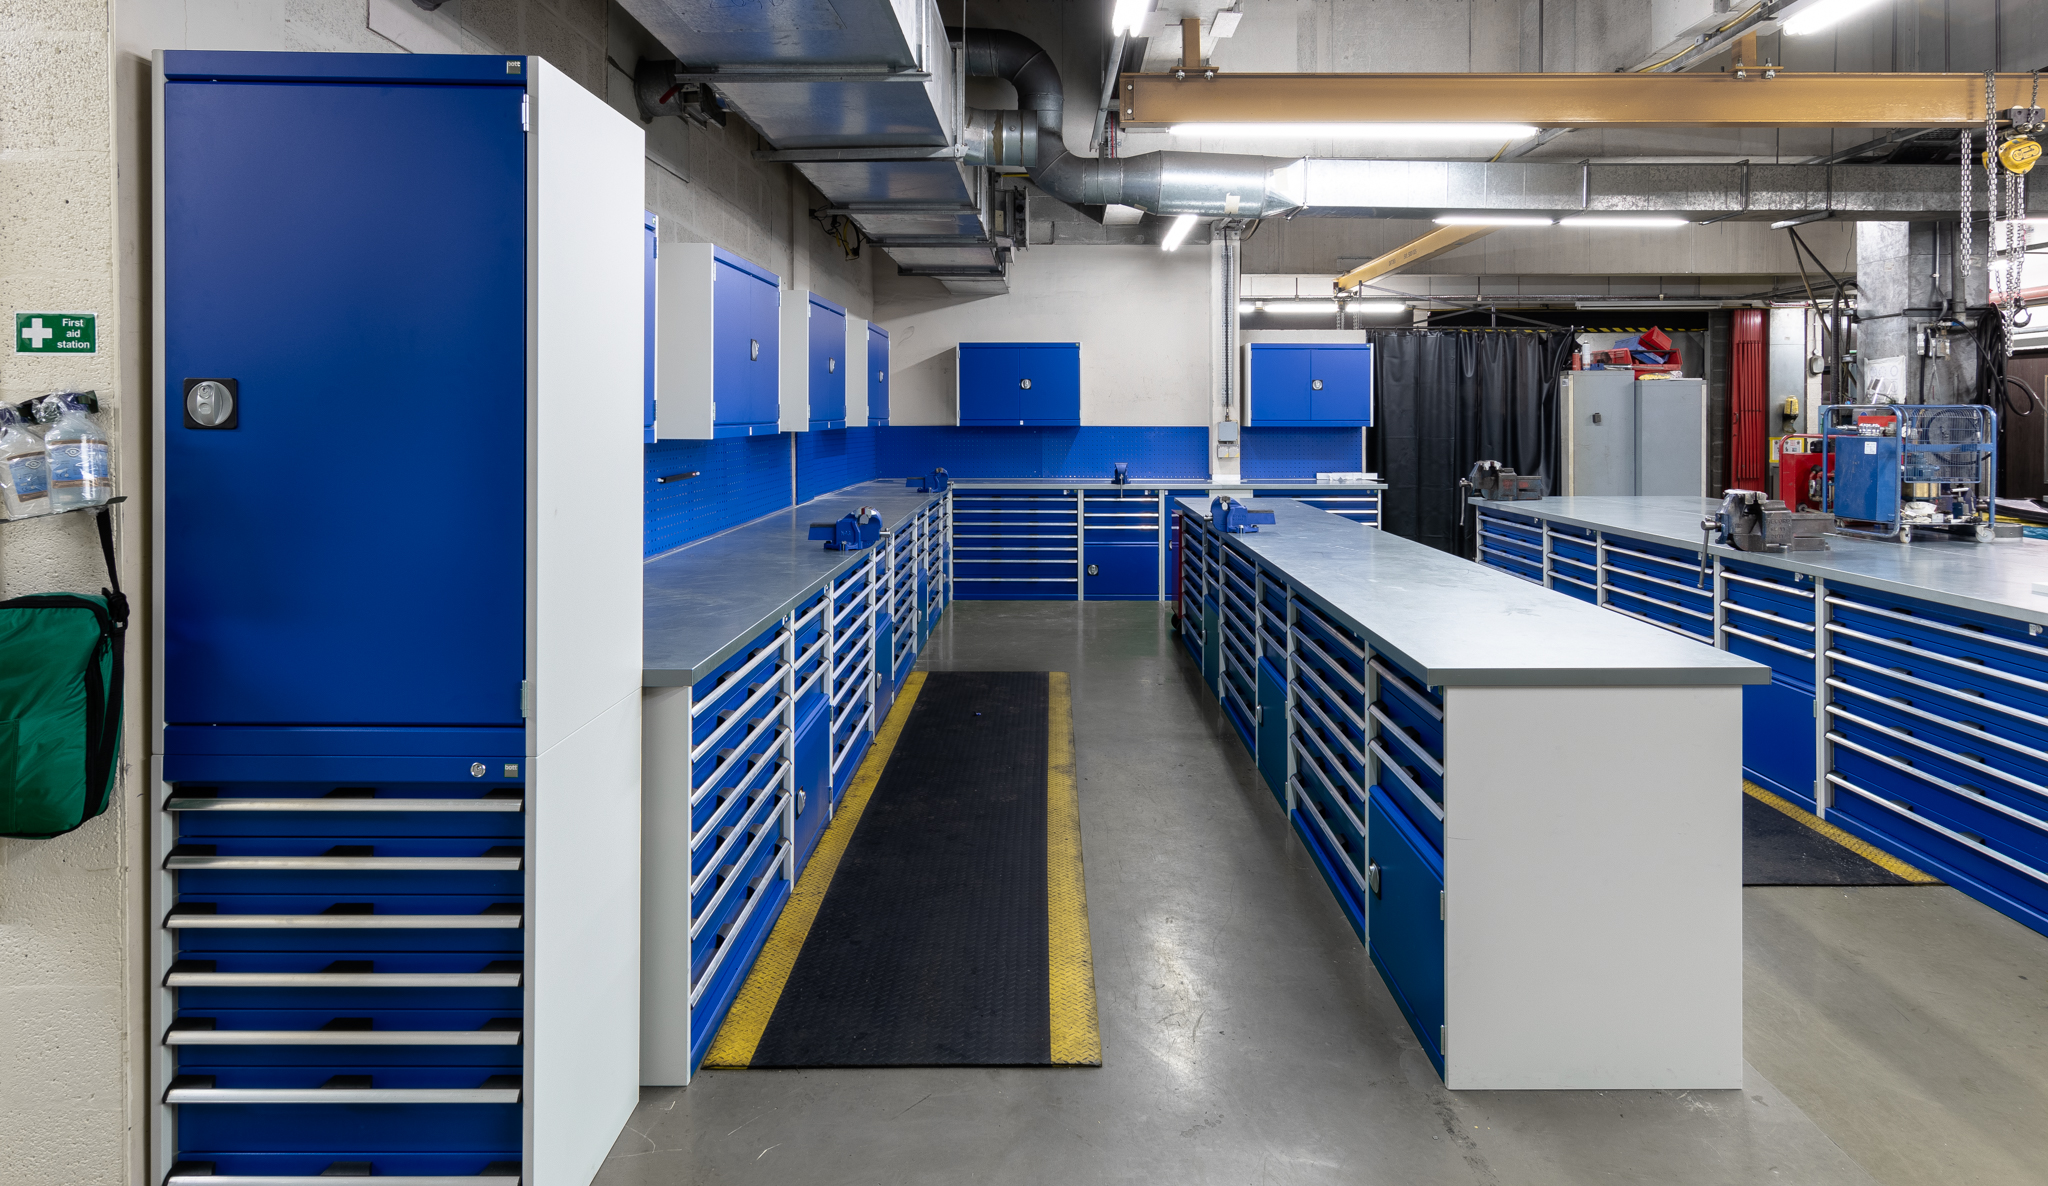 Our most recent large commercial contract. Bott Cubio cabinets designed, supplied and fitted in association with Bott. This is ENGIE's power station workshop in Wales.